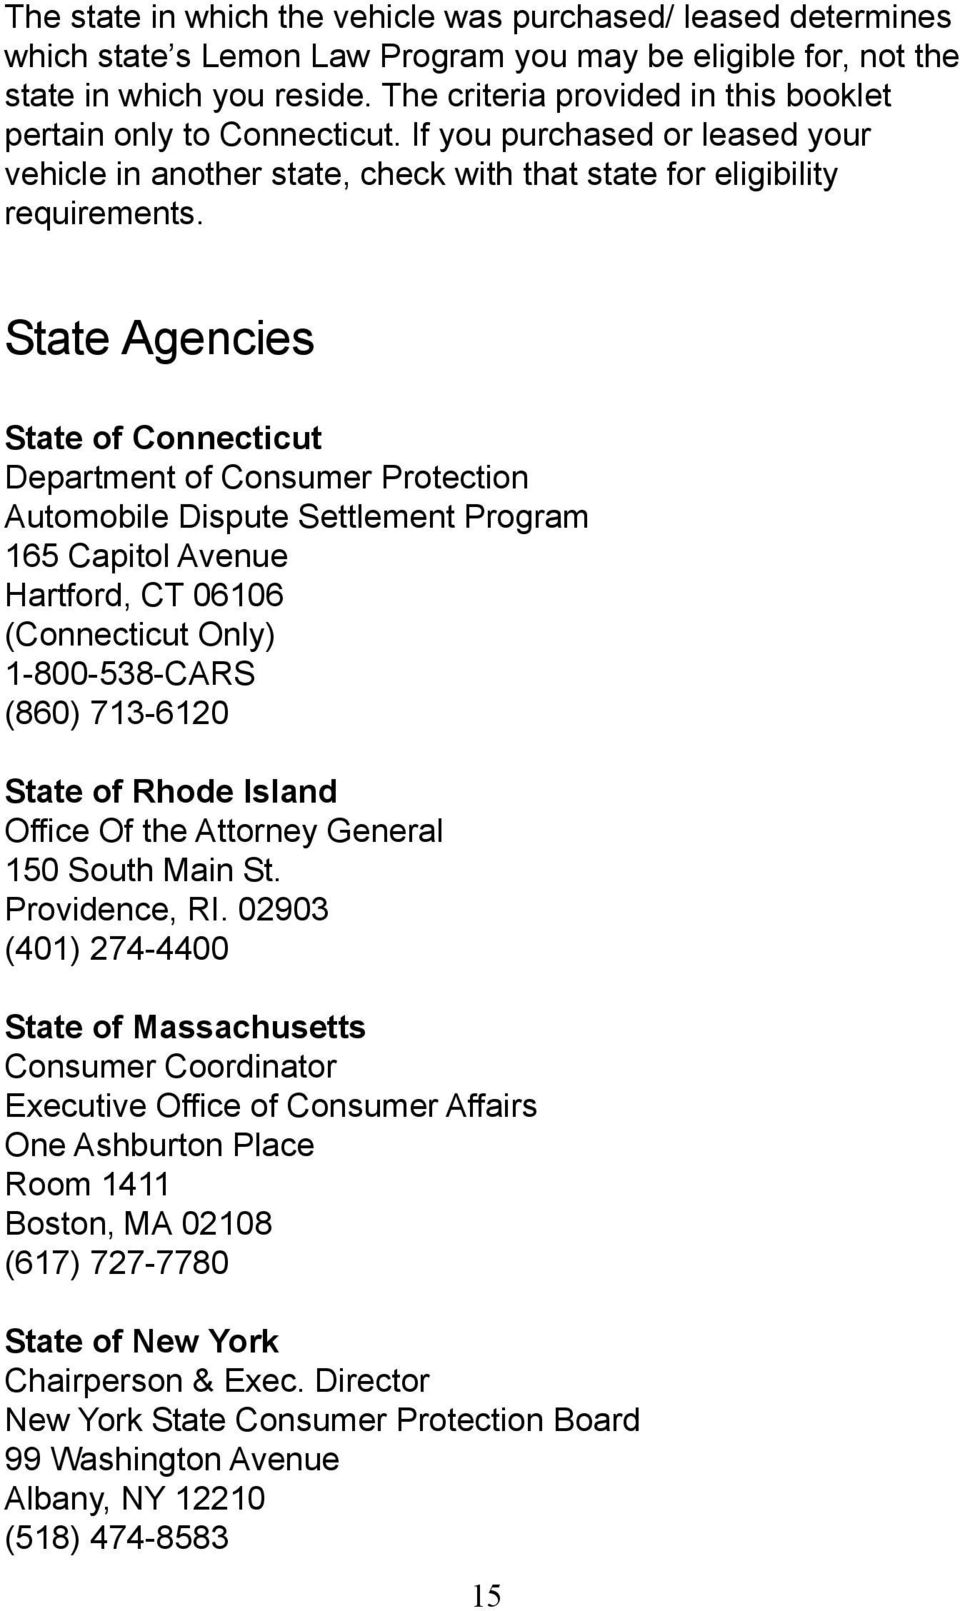 State Agencies State of Connecticut Department of Consumer Protection Automobile Dispute Settlement Program 165 Capitol Avenue Hartford, CT 06106 (Connecticut Only) 1-800-538-CARS (860) 713-6120